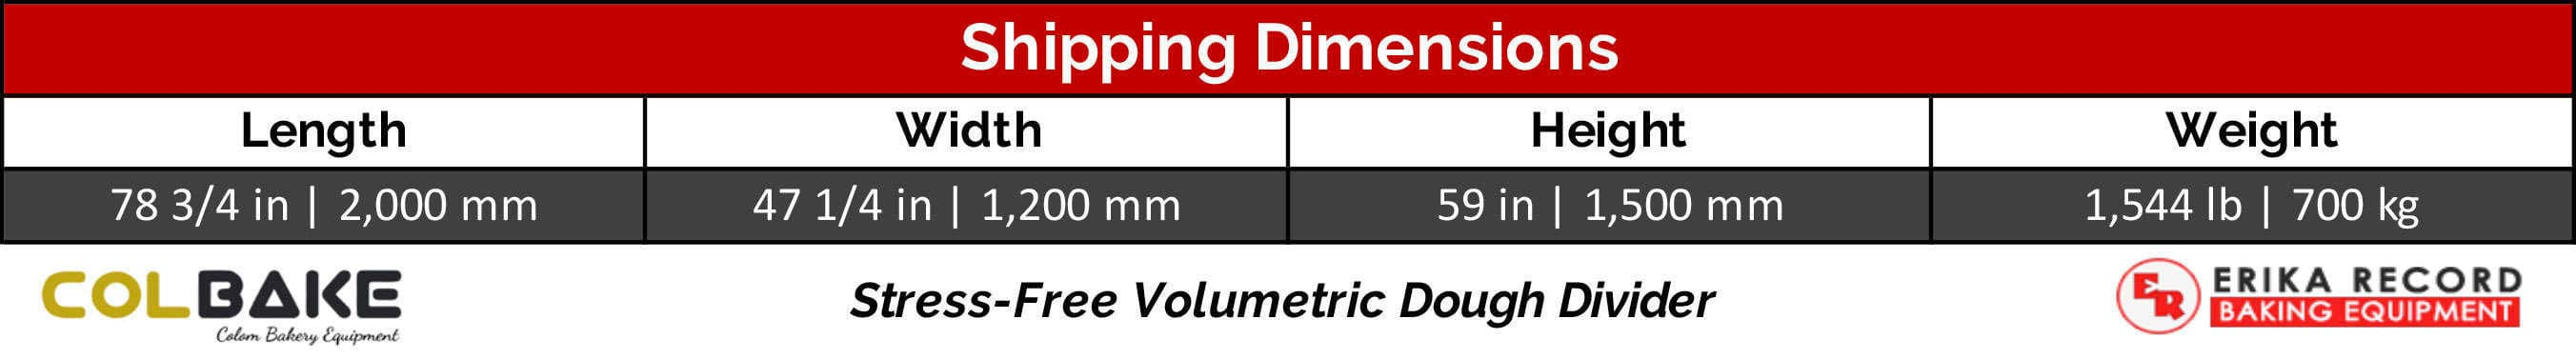 Colbake Volumetric Dough Divider Shipping Weight & Dimensions